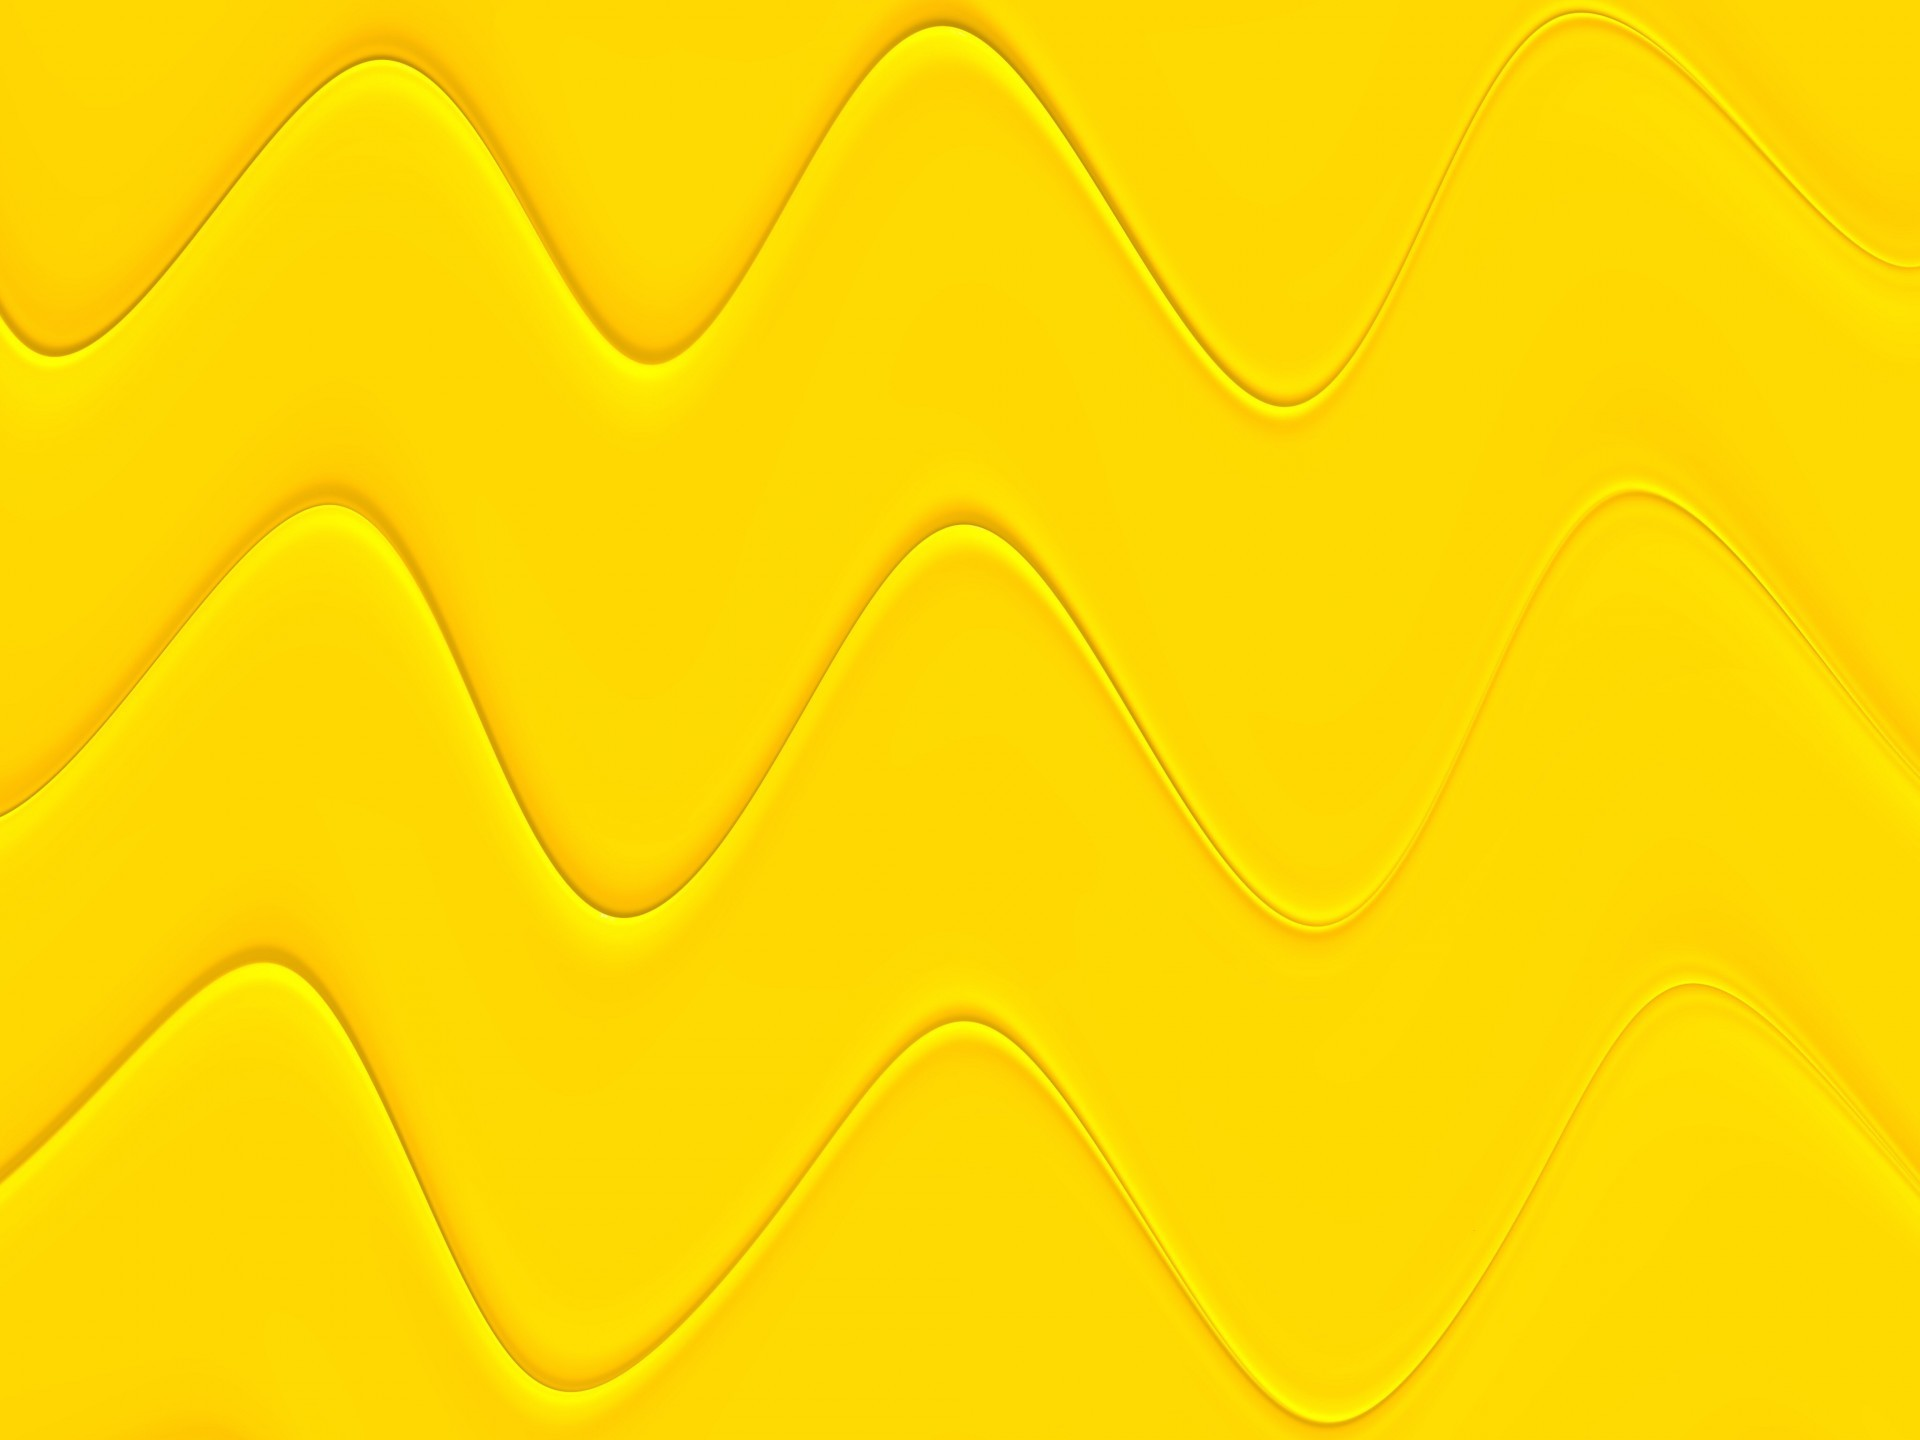 Fit Wallpaper Iphone X Neon Yellow Background 183 ① Wallpapertag